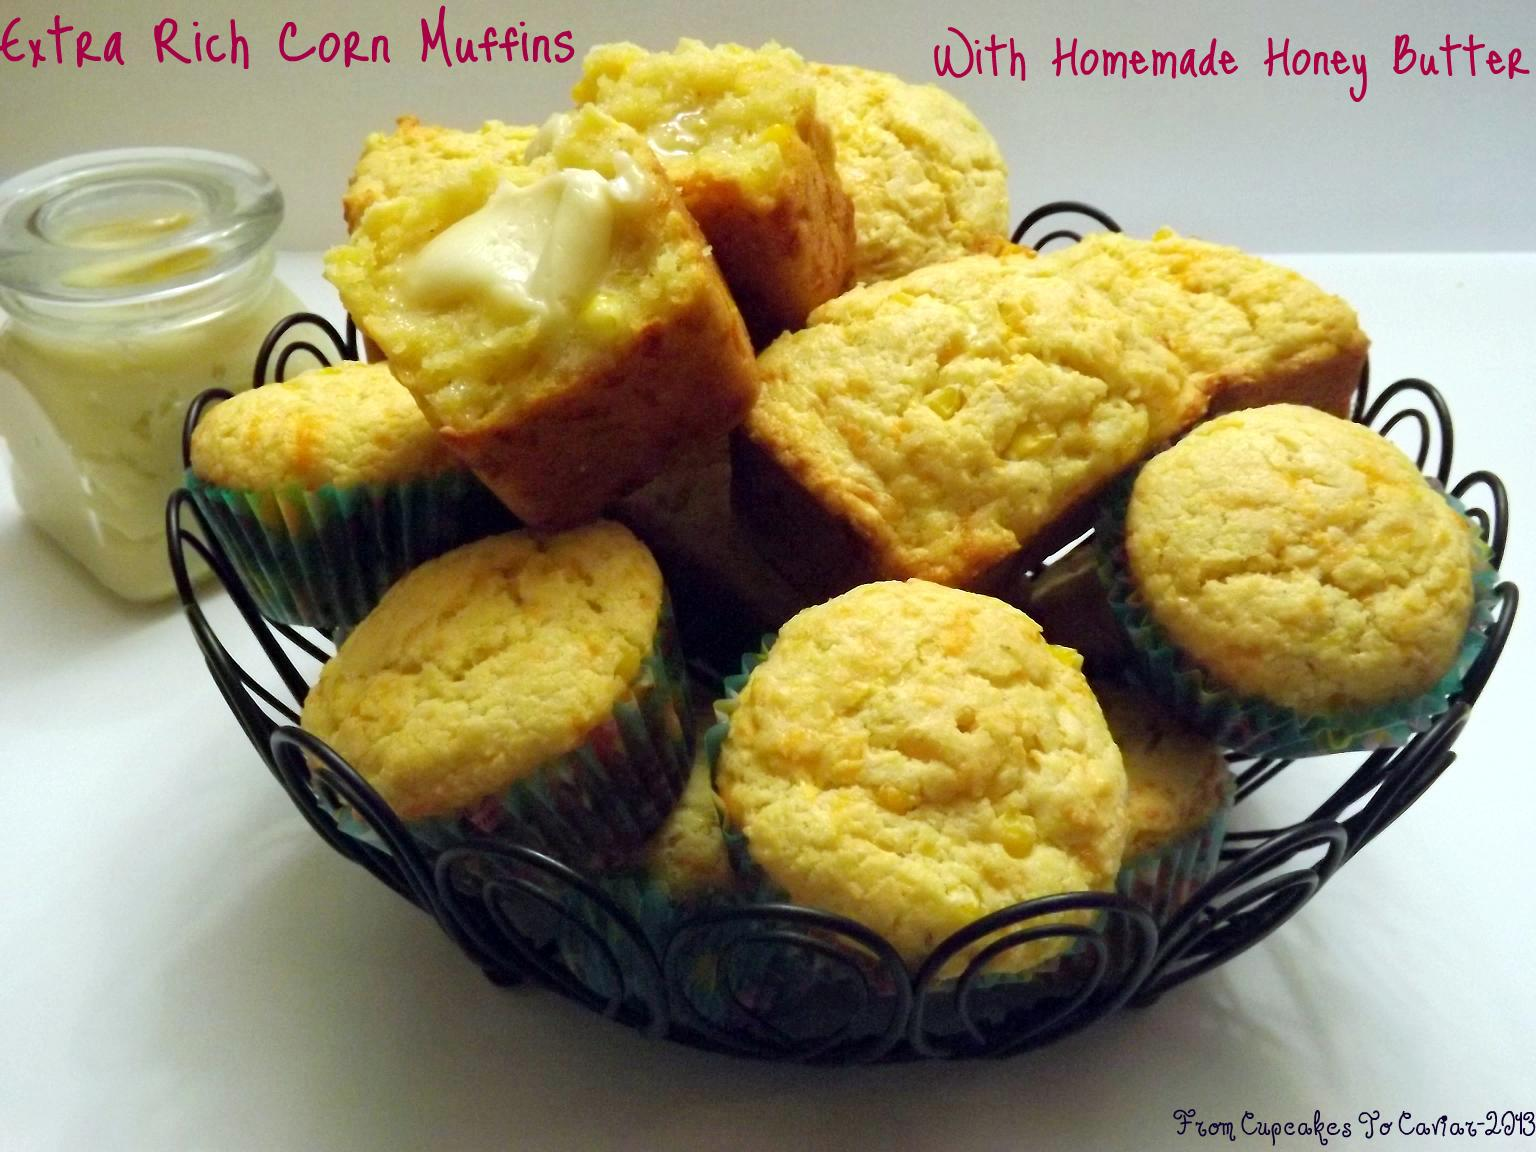 Extra-Rich-Corn-Muffins-With-Homemade-Honey-Butter